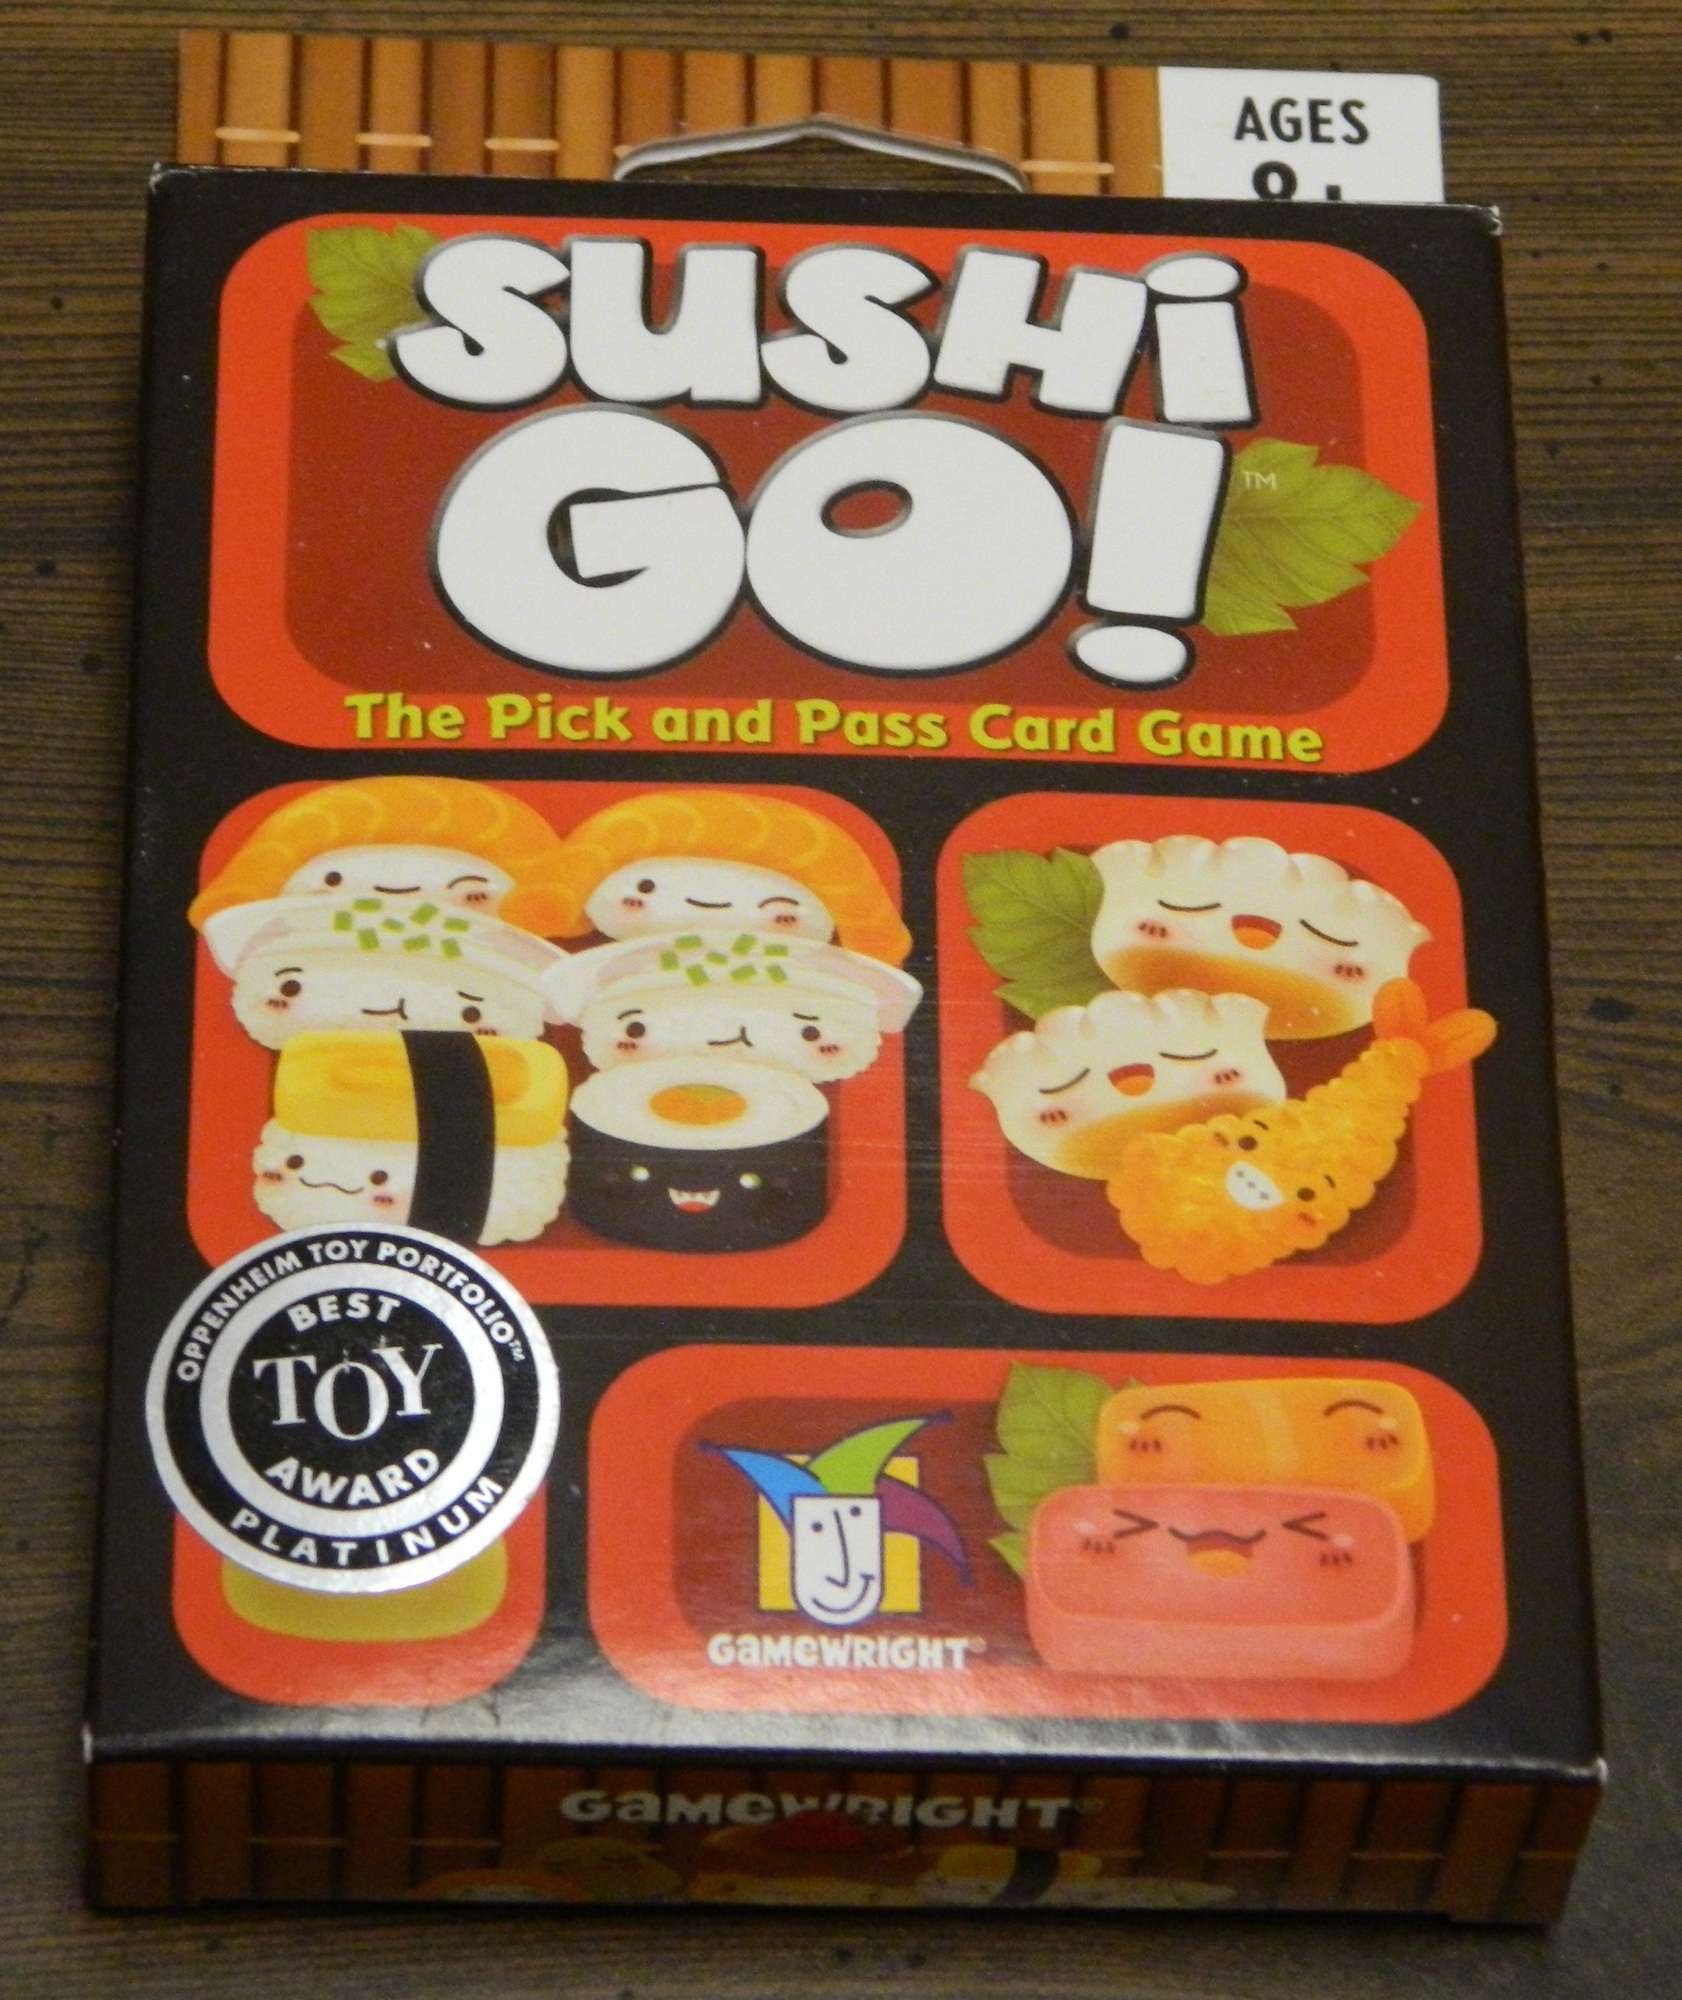 Box for Sushi Go